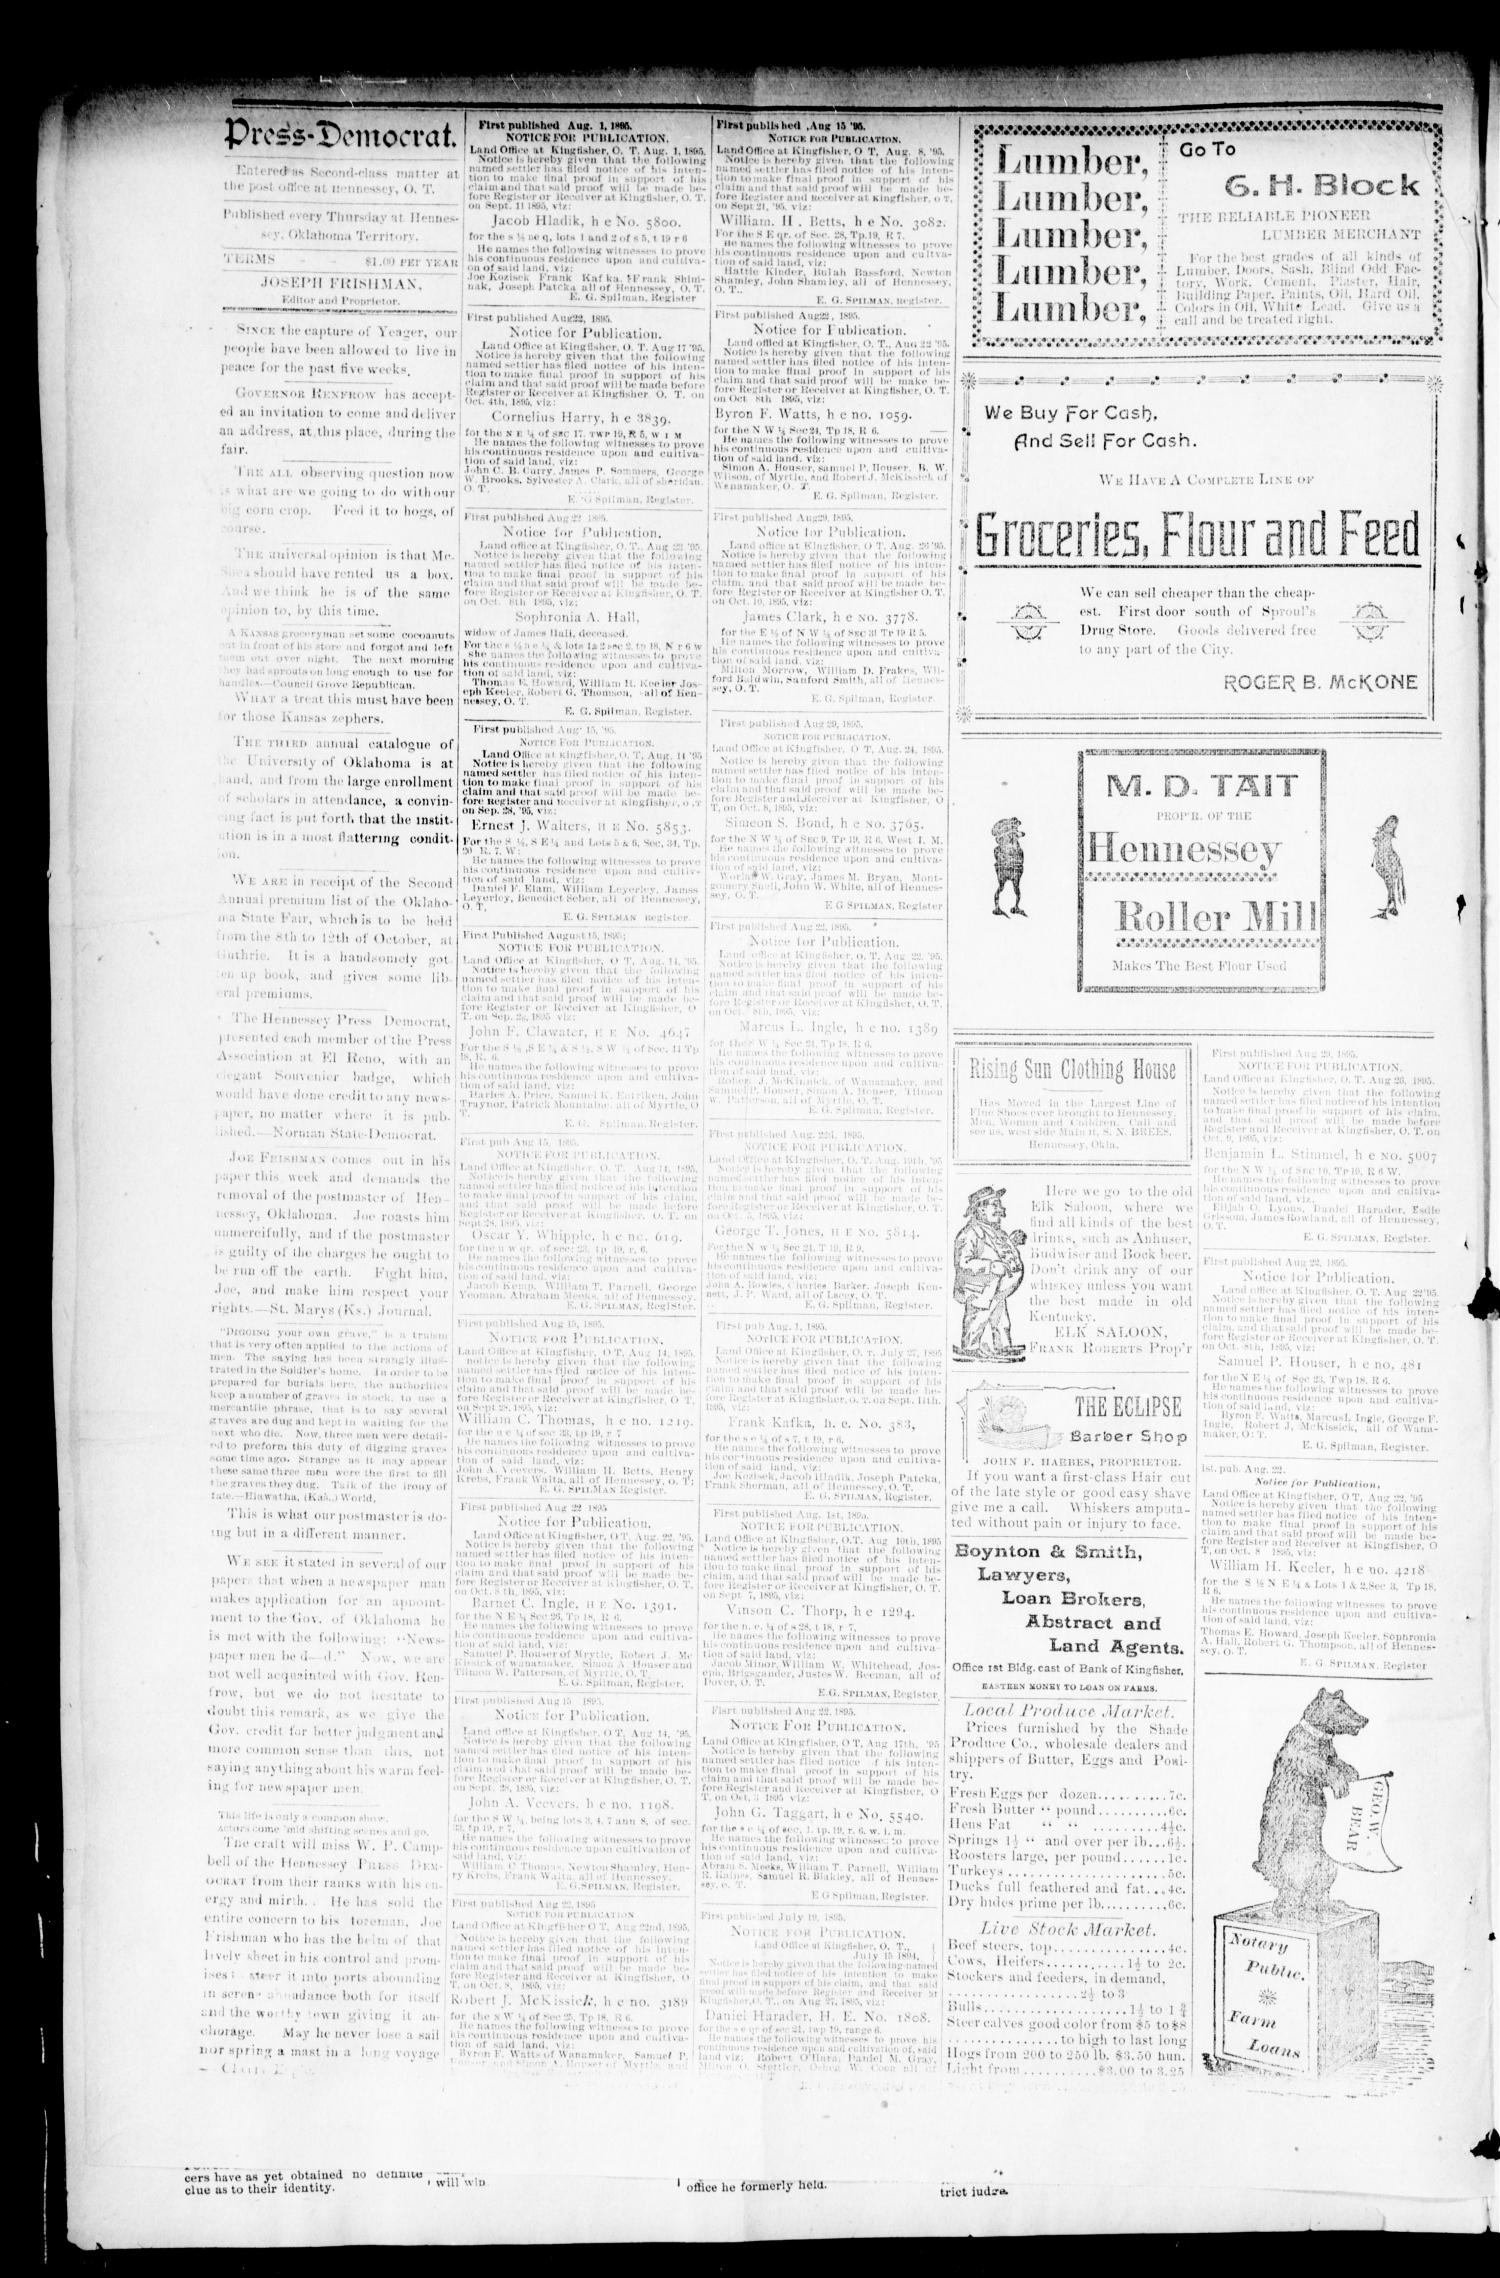 The Press Democrat. (Hennessey, Okla.), Vol. 3, No. 50, Ed. 1 Thursday, September 5, 1895                                                                                                      [Sequence #]: 4 of 8